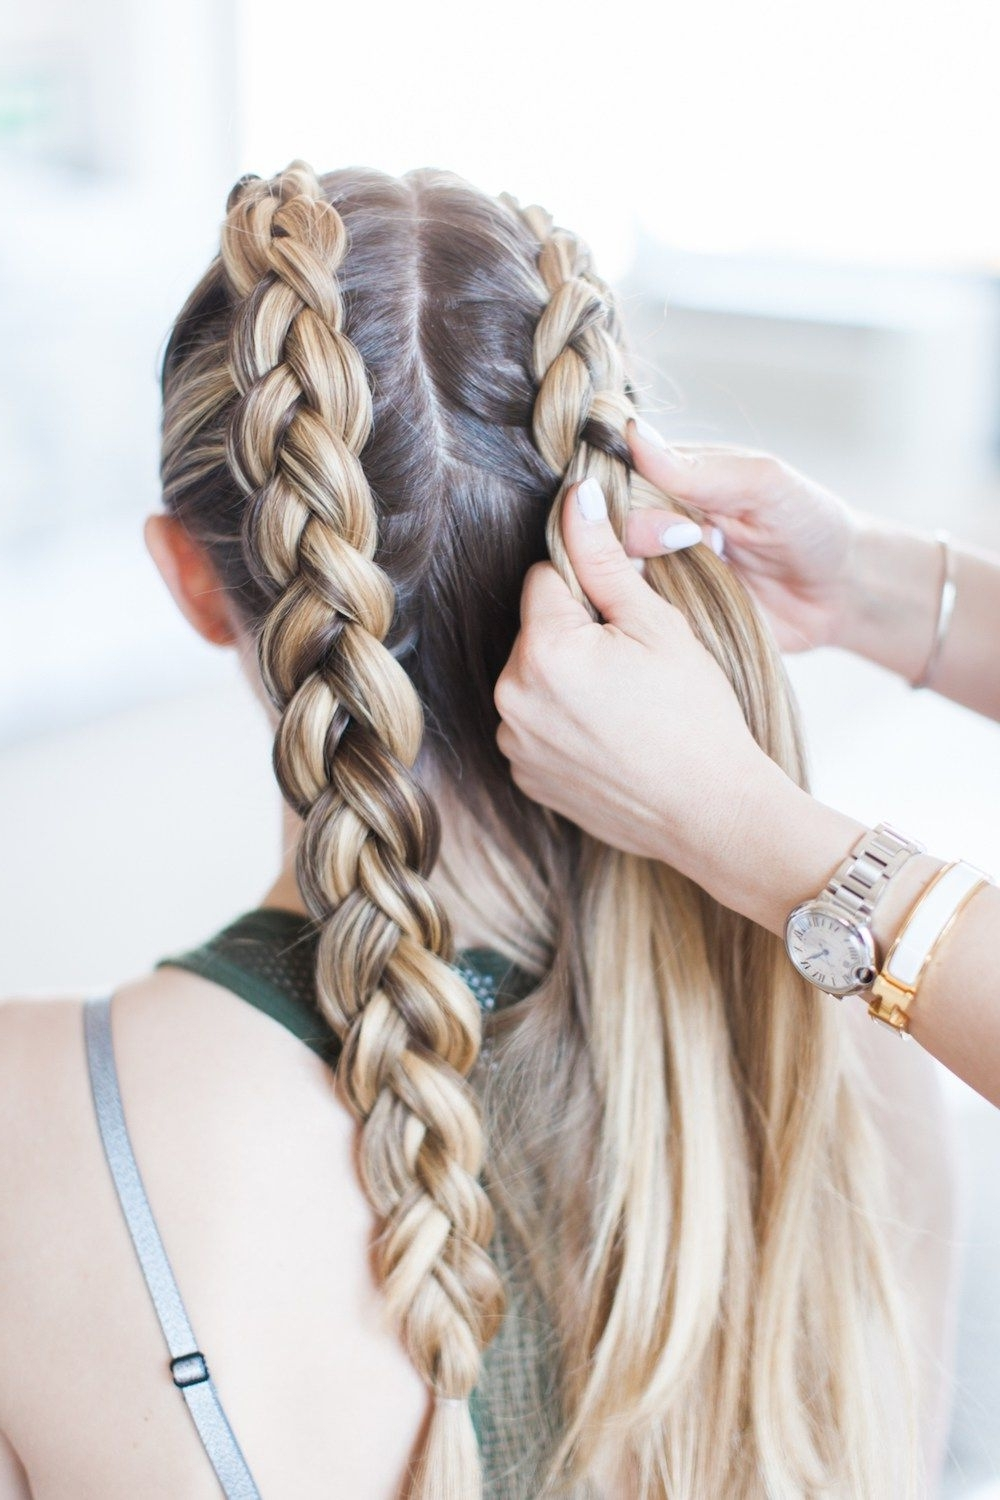 Fashionable Dutch Braid Hairstyles In Master These Double Dutch Braids In 3 Steps & Less Than 5 Minutes (View 6 of 15)